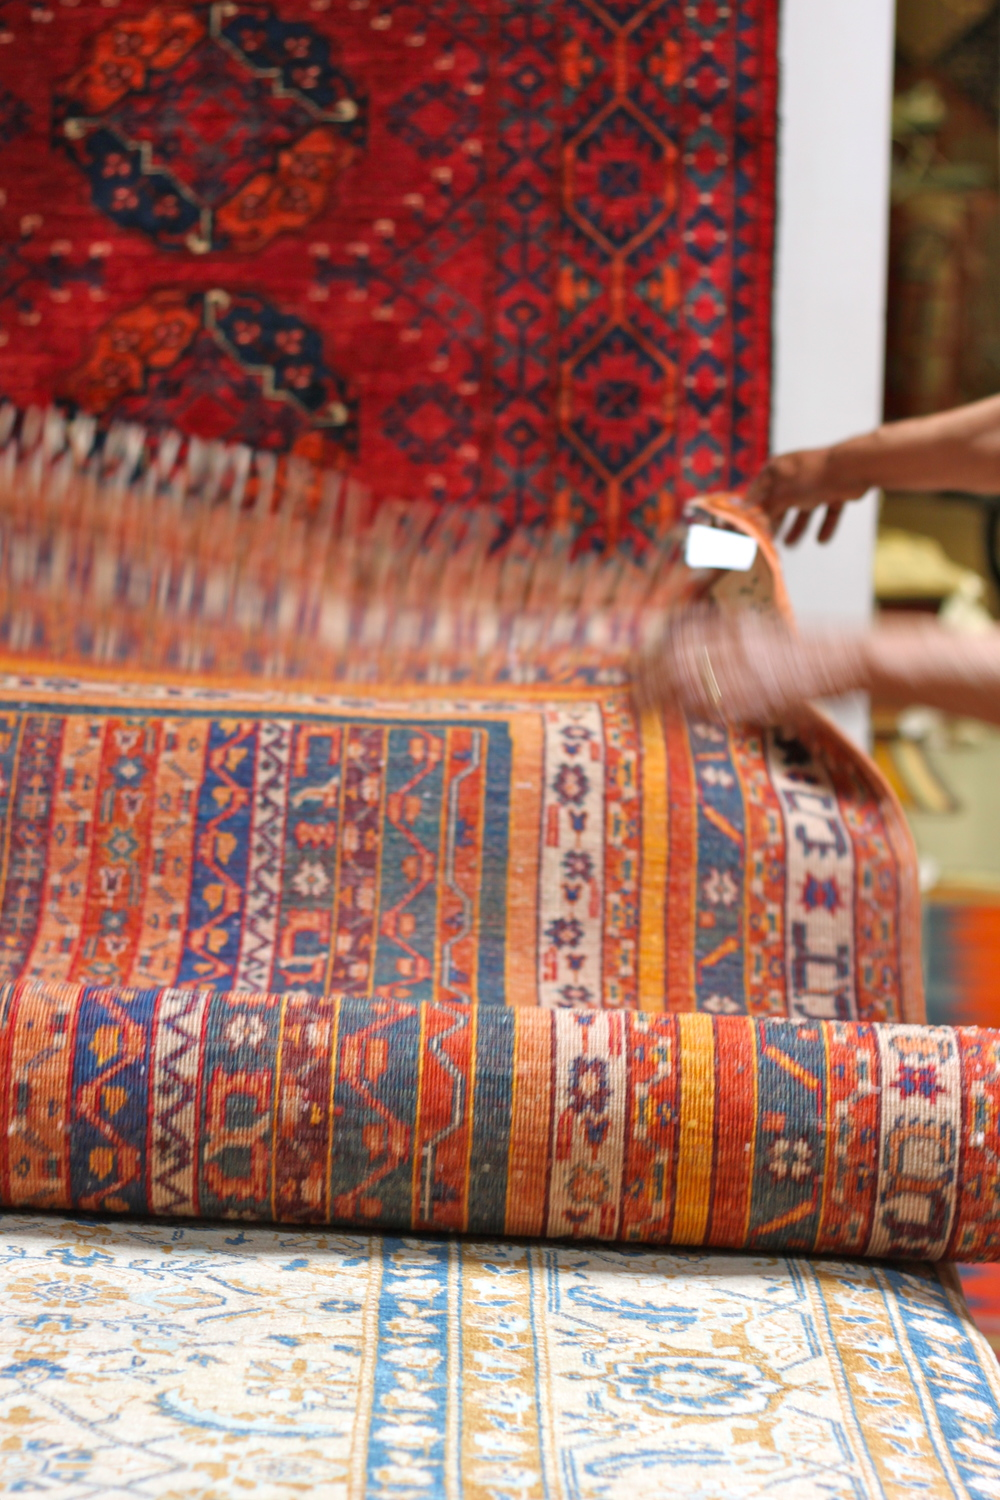 In Search Of Floor Coverings For Our California House, My Husband And I  Dropped In At Yayla Tribal Rugs To Go Through Piles Of Colorfully Patterned  And ...